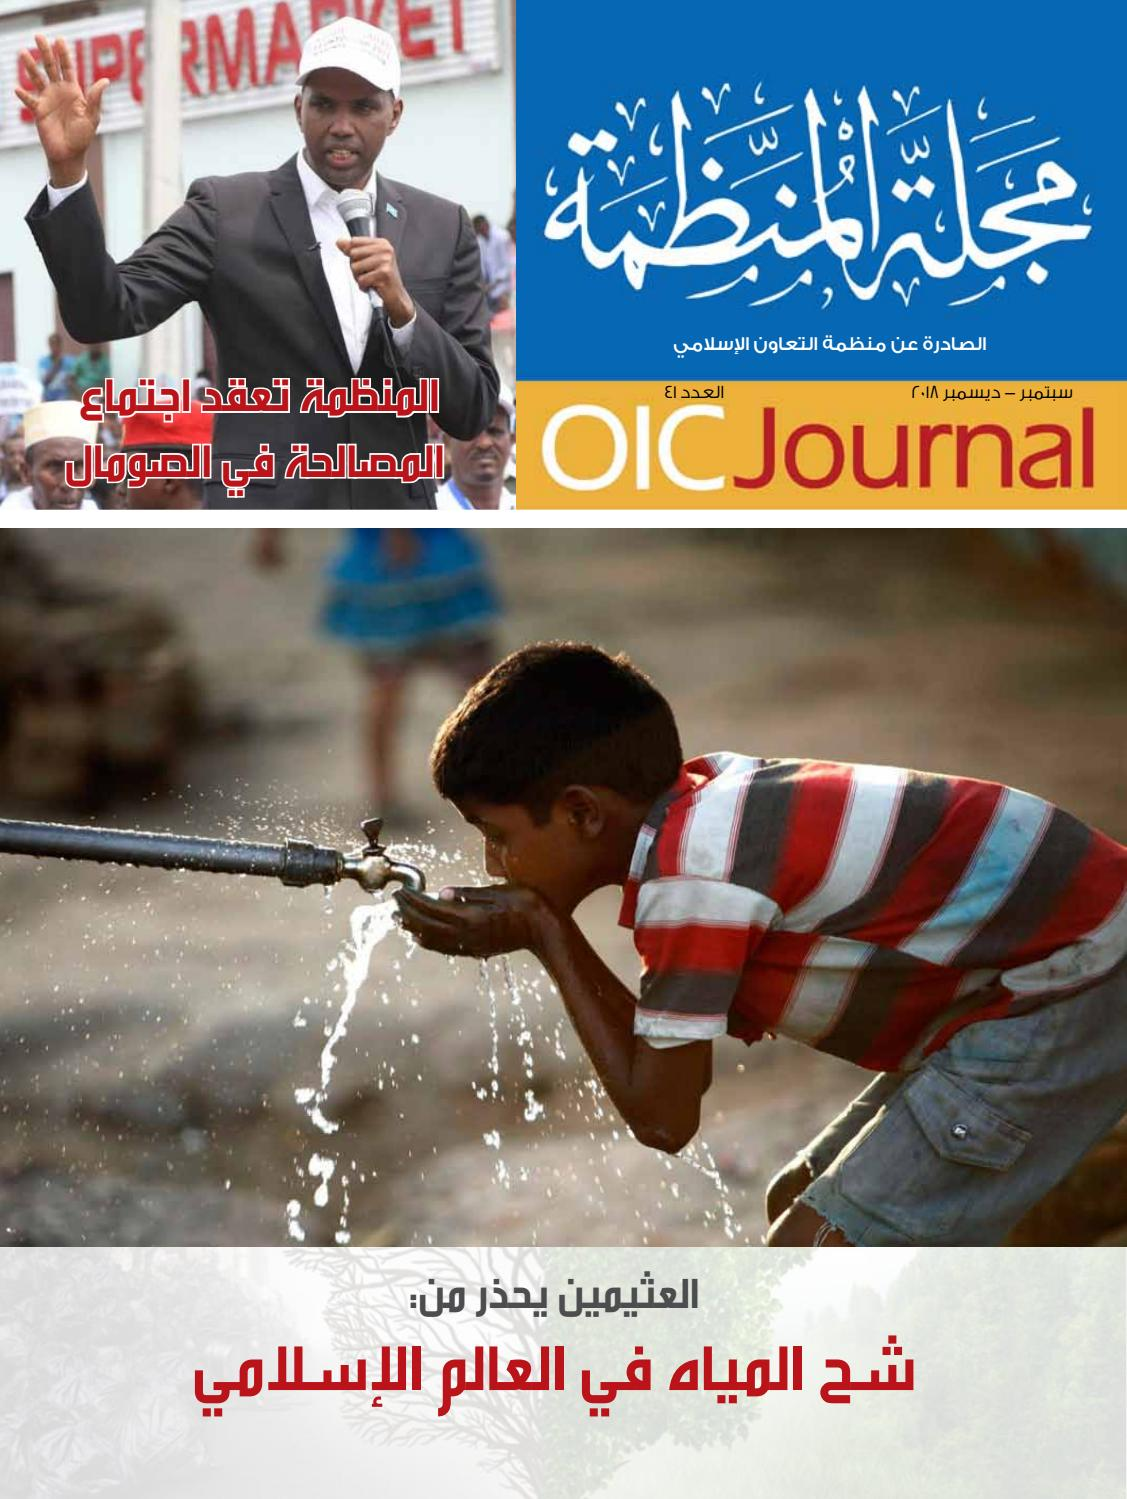 c1588326cf651 مجلة المنظمة - العدد ٤١ by Organisation of Islamic Cooperation - issuu